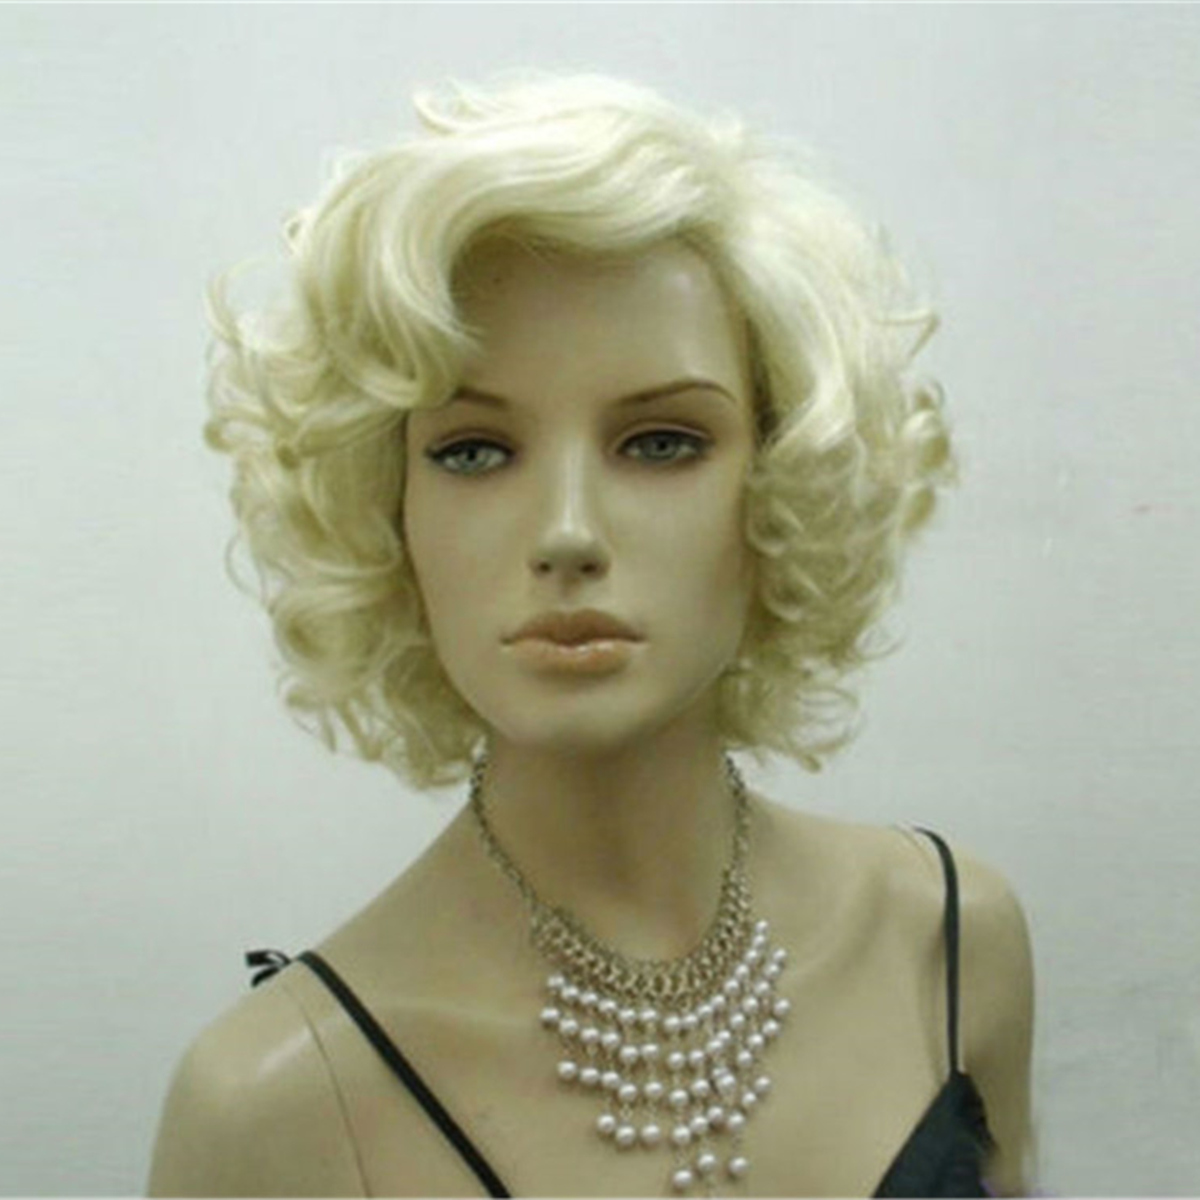 Blonde Marilyn Monroe Fashion Curly Wig Cosplay Hair Full Wigs Hot Style Short